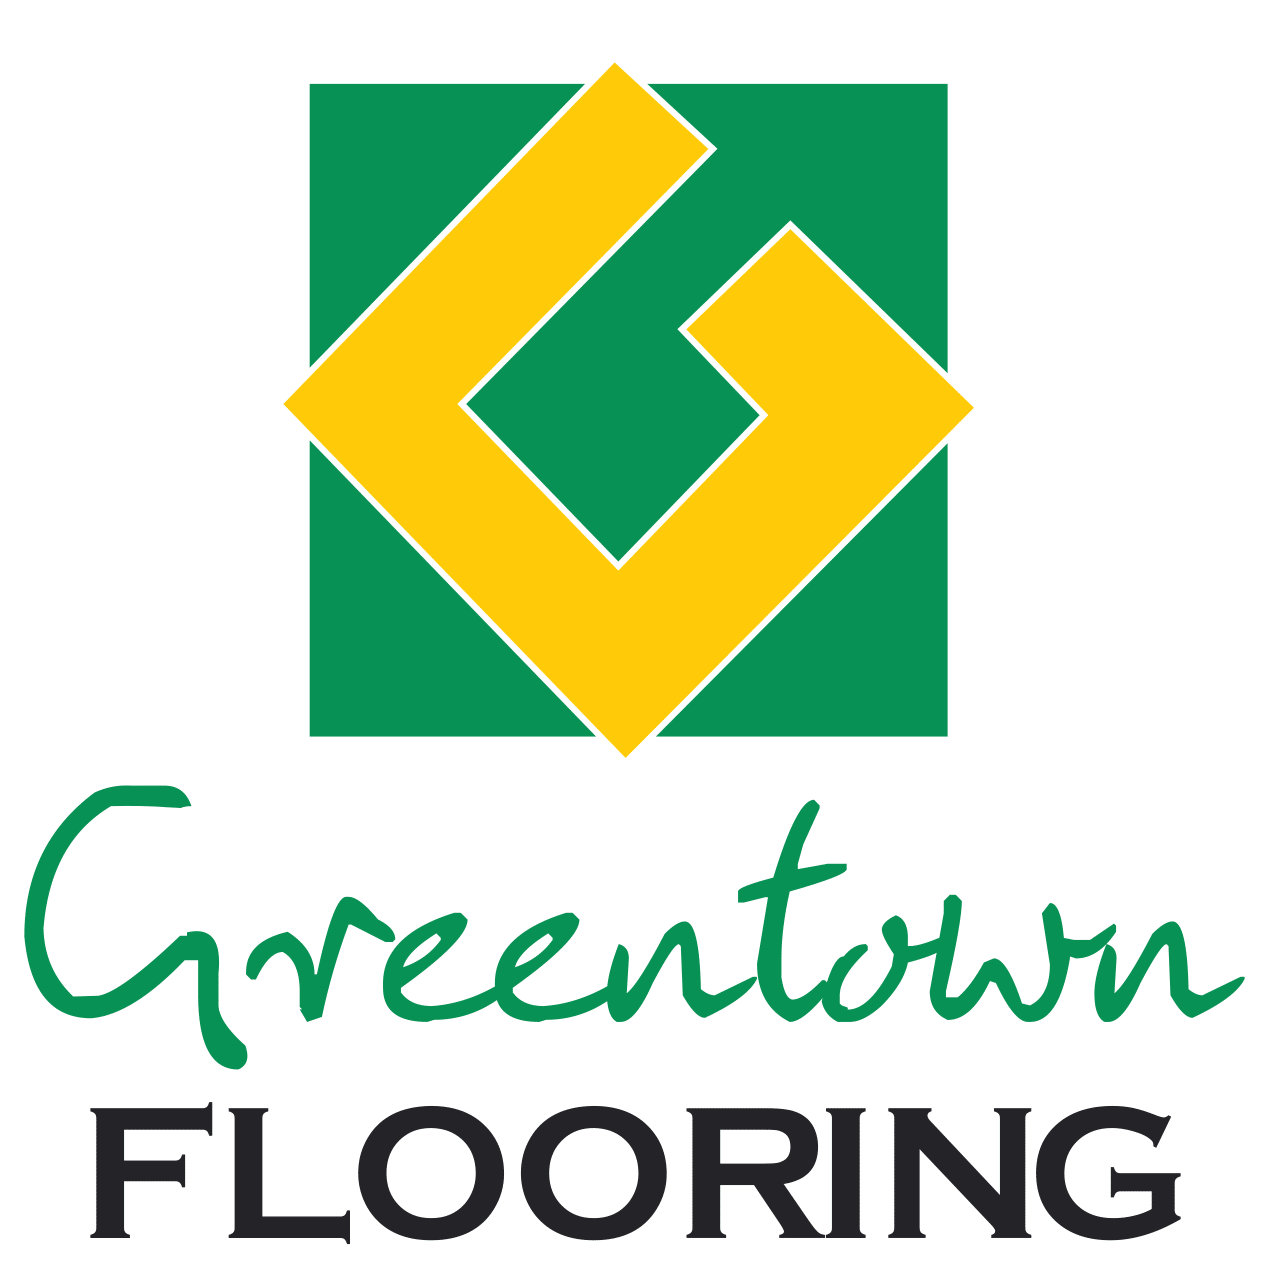 Greentown Flooring Logo